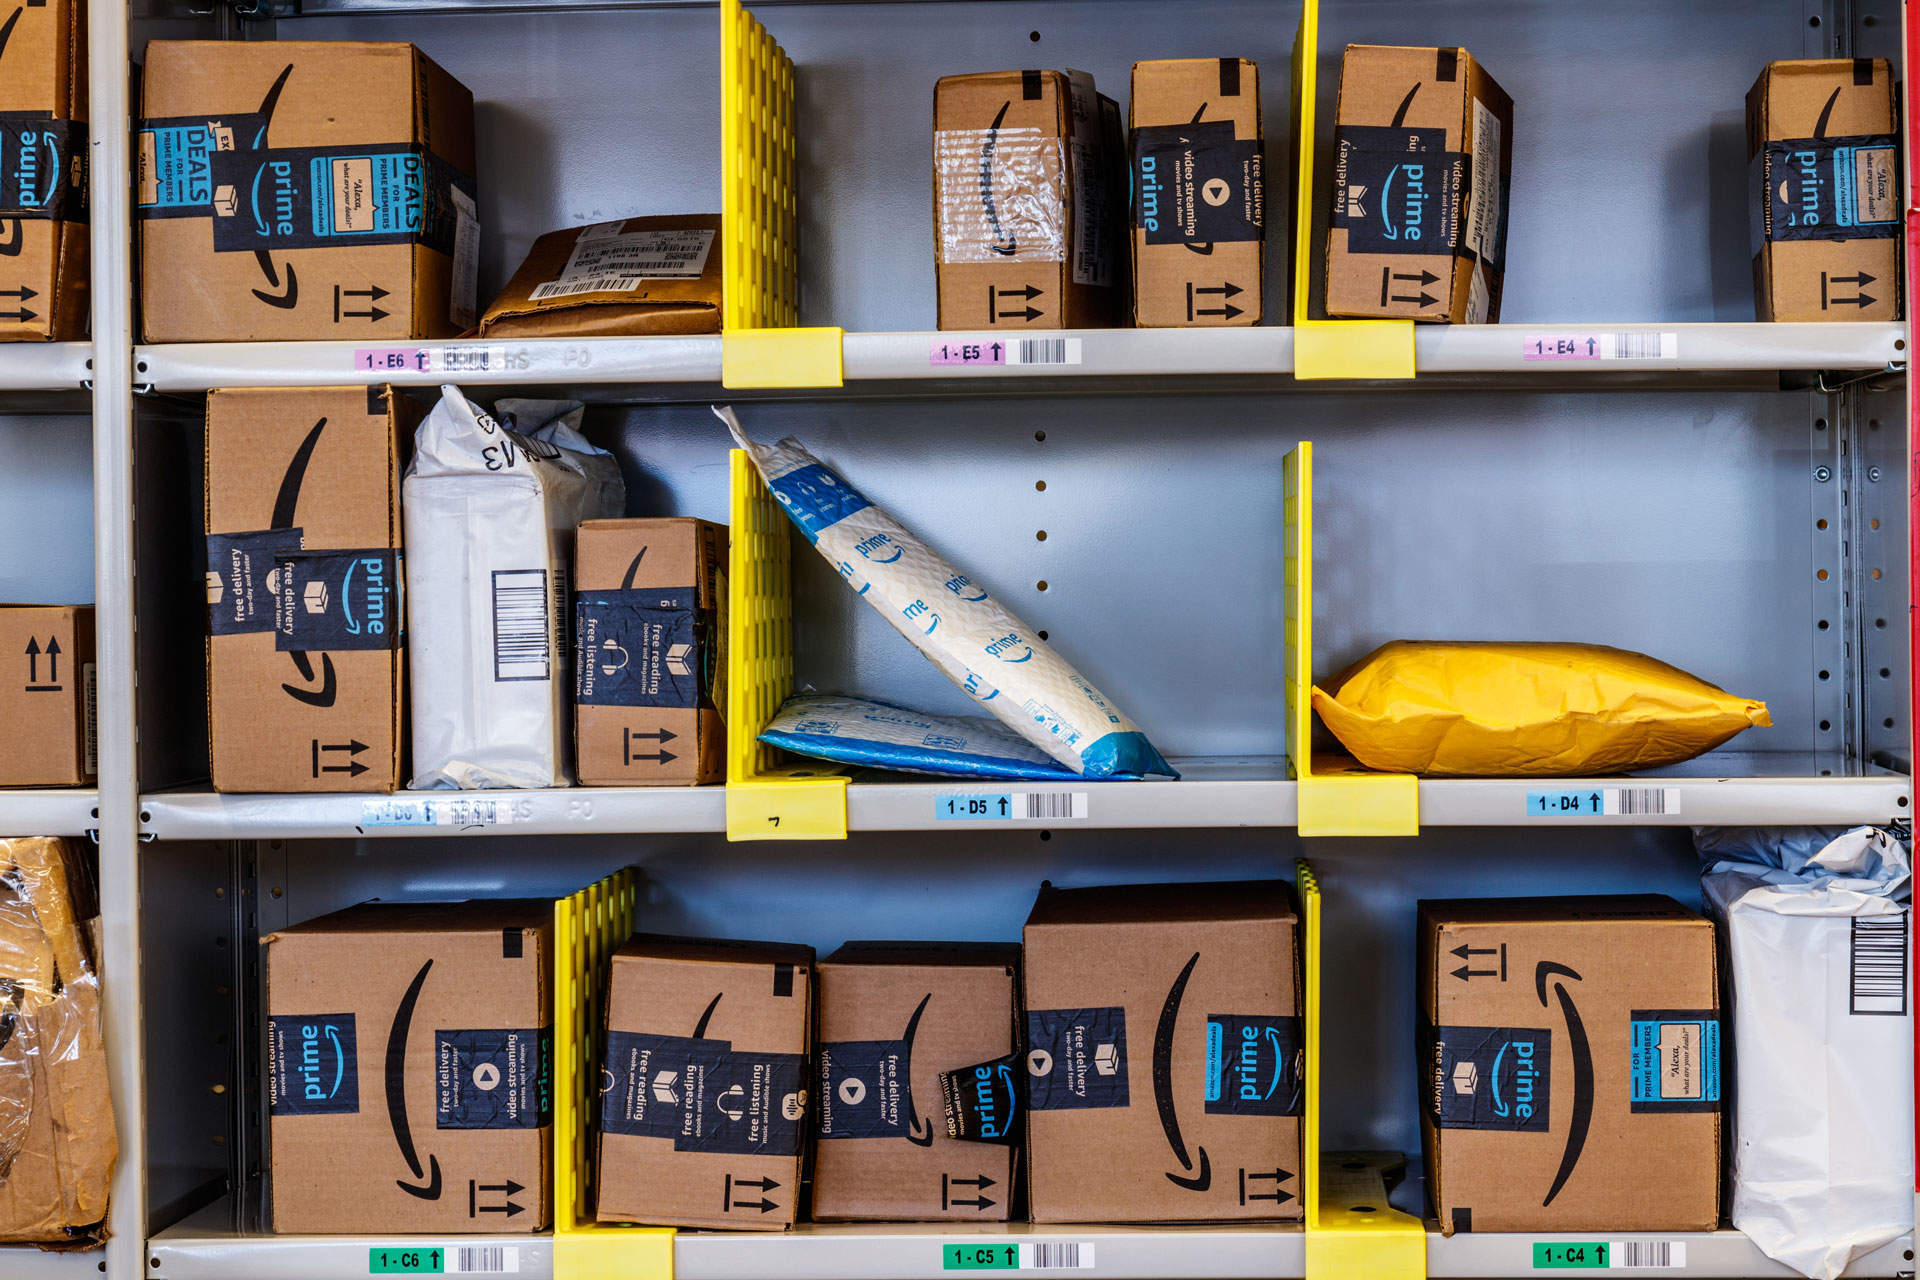 Amazon's domination: a timeline of key Amazon acquisitions